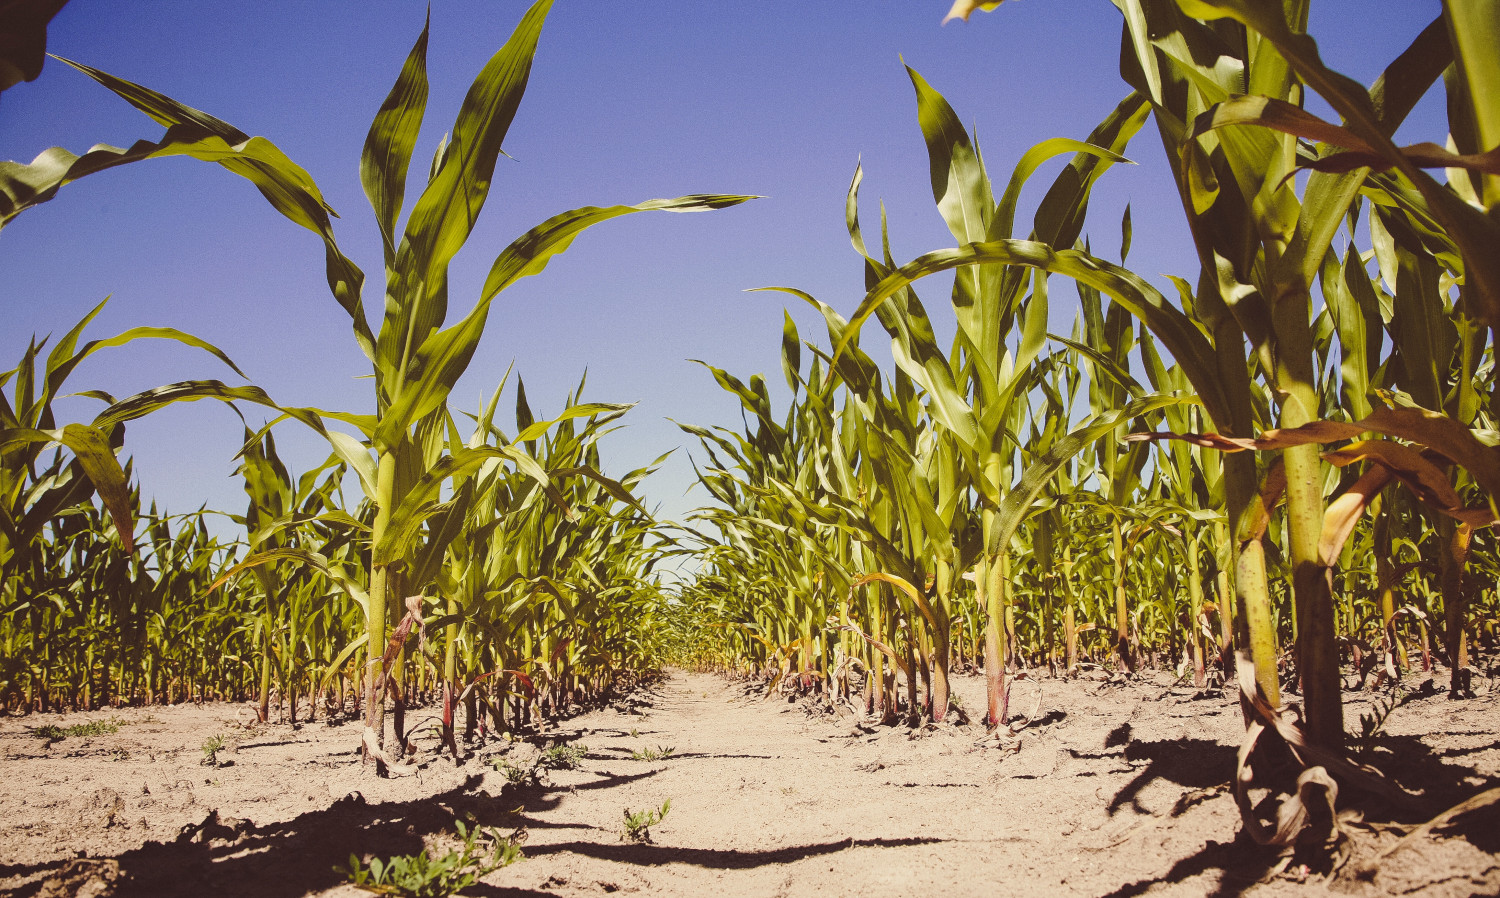 Corn is a staple food around the world. More plants should receive attention for cultivation and food security.